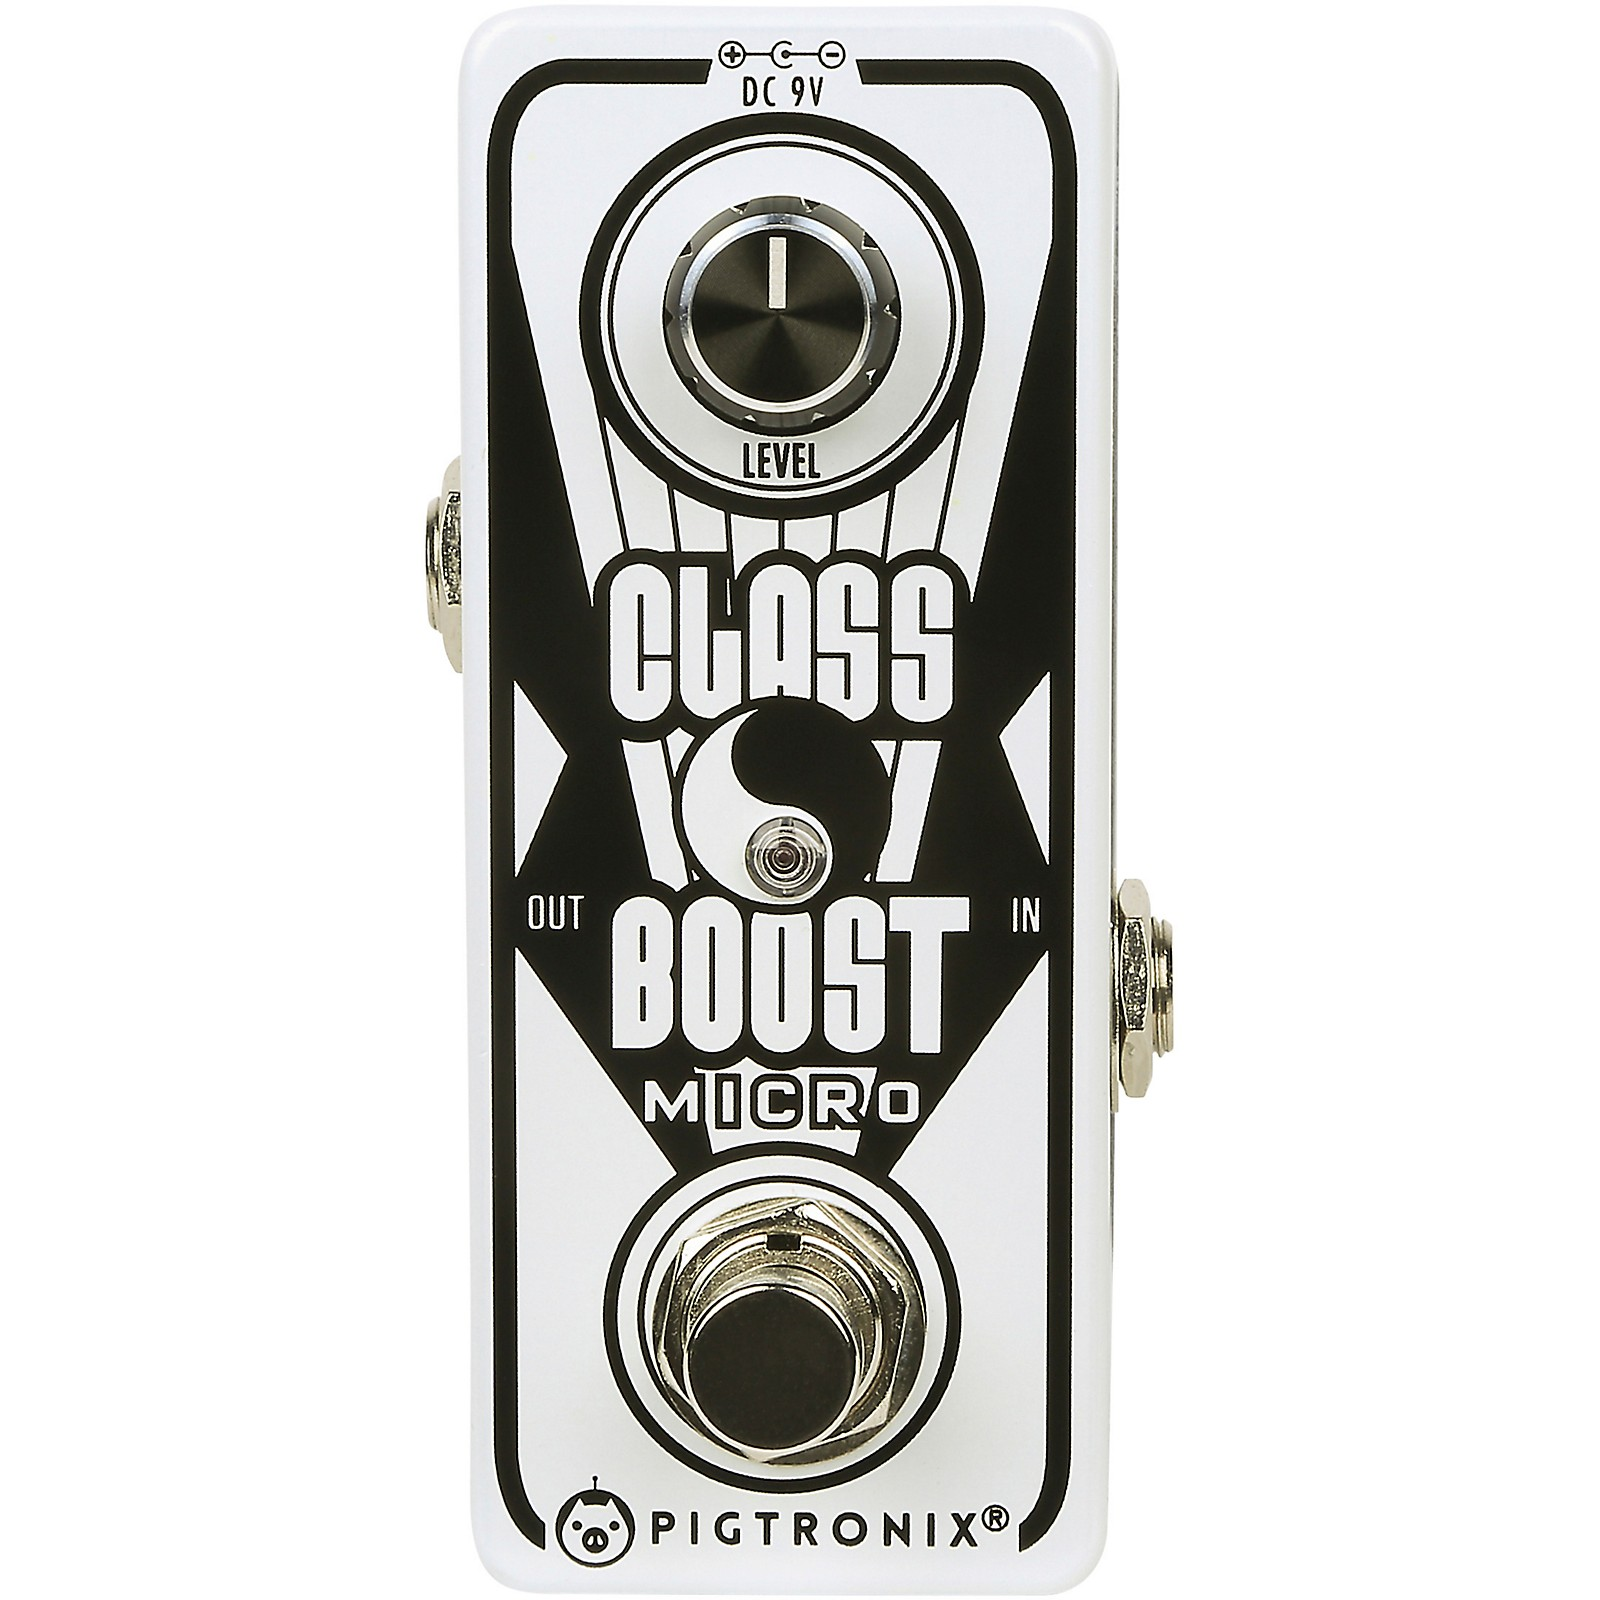 Open Box Pigtronix Class A Boost Micro Effects Pedal